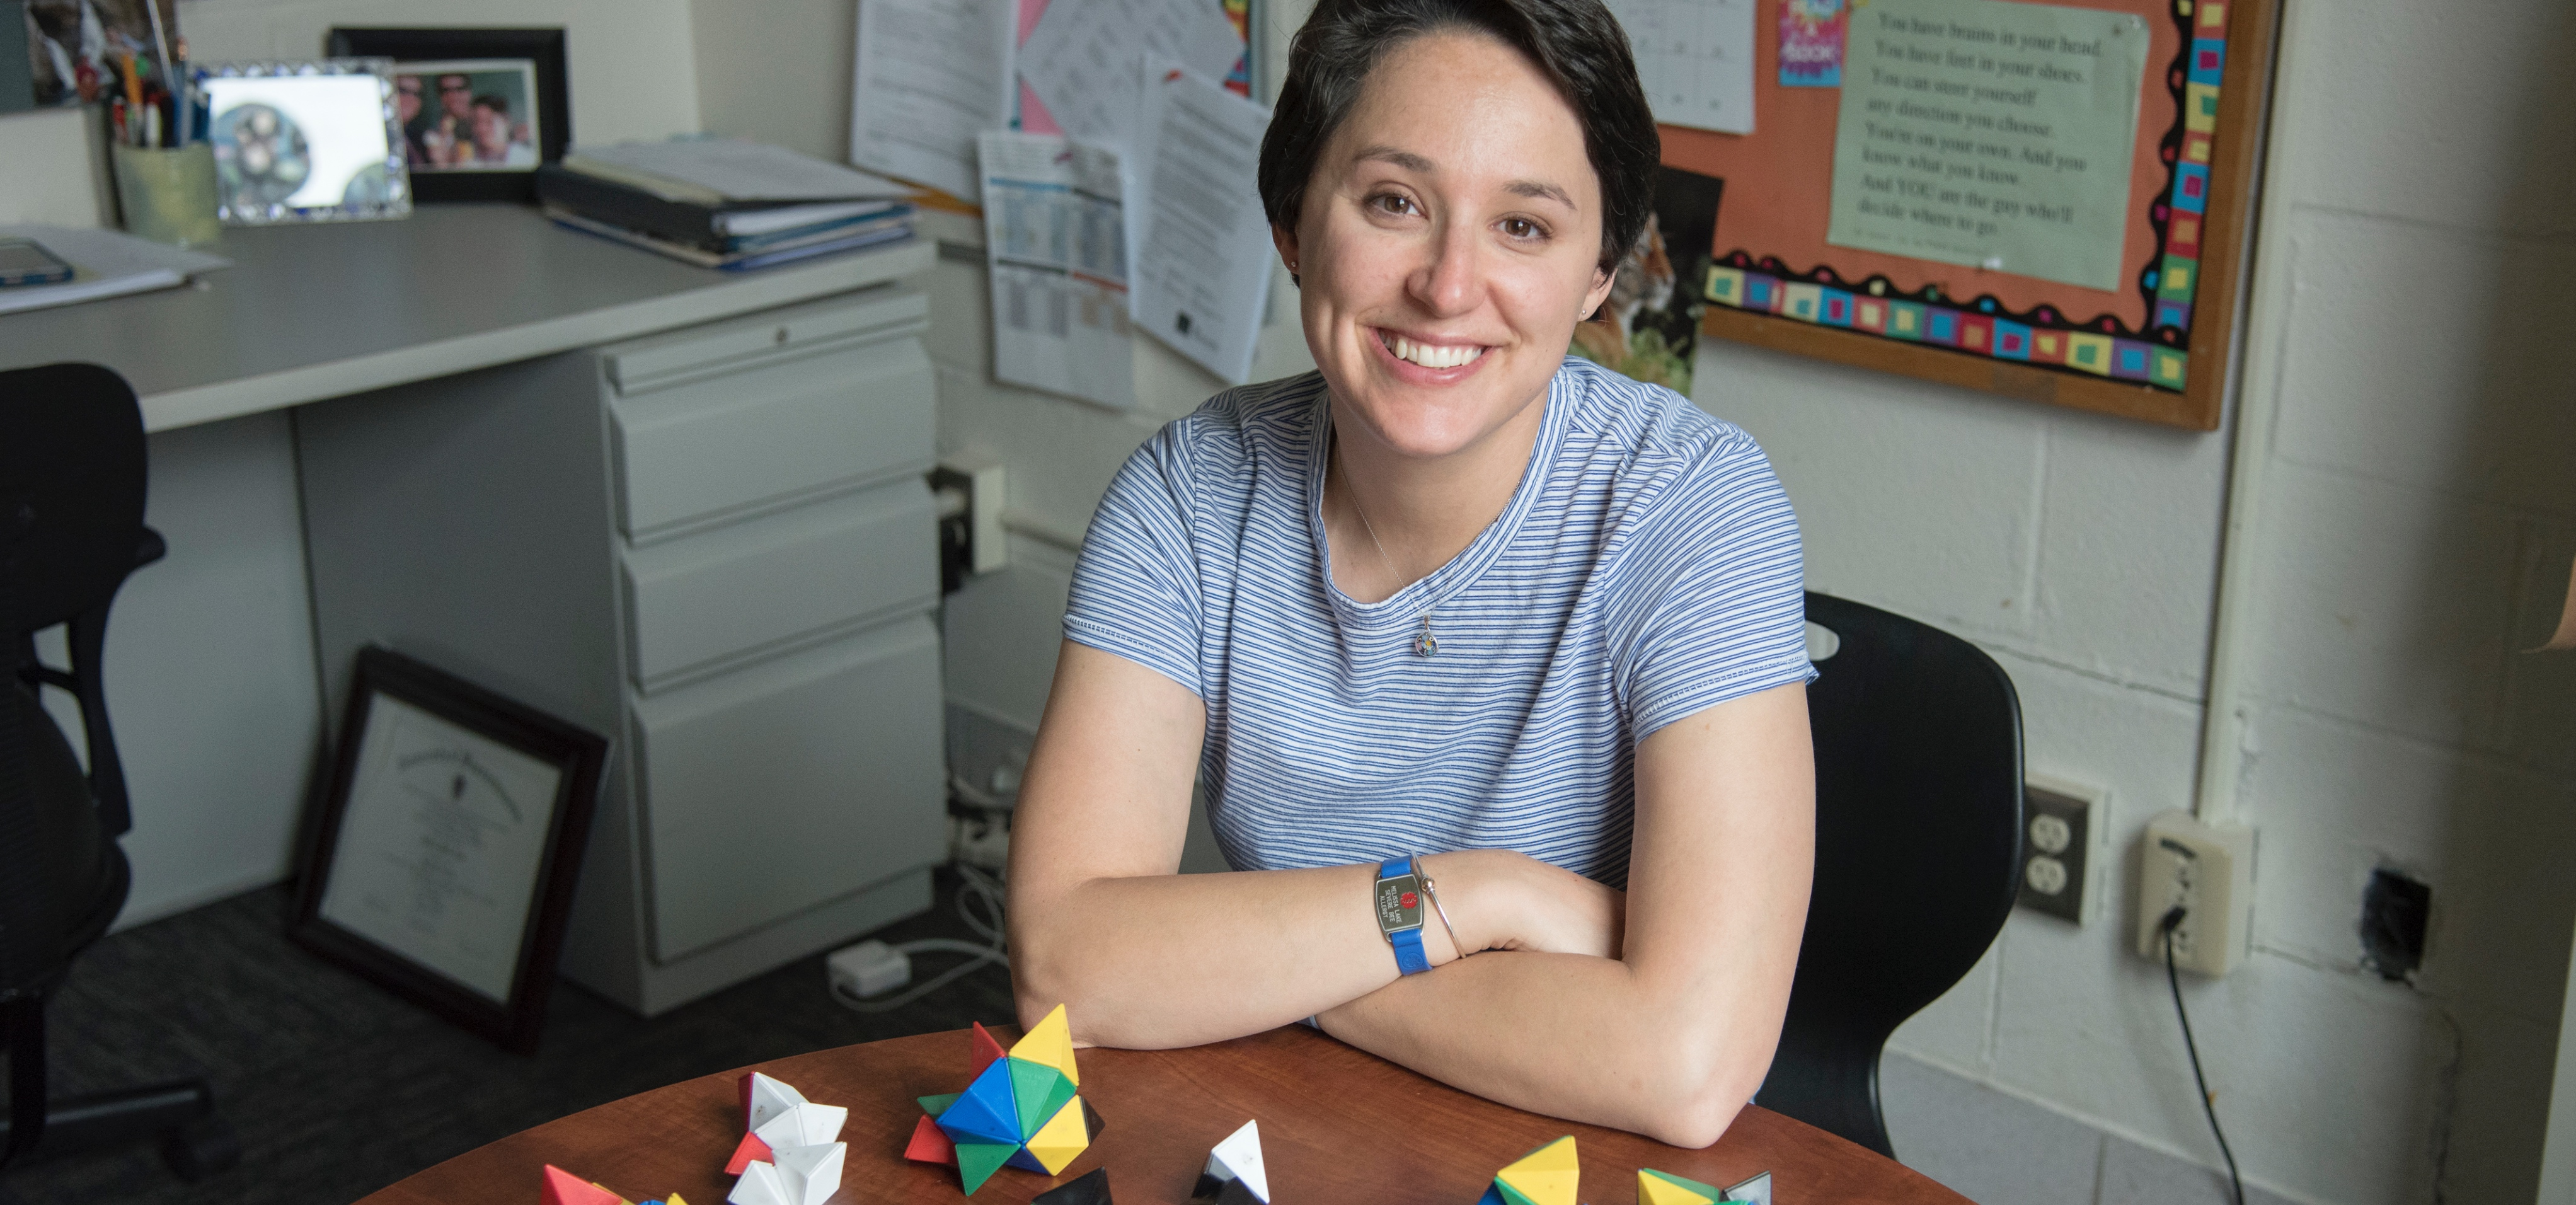 Teacher sitting at table with shape blocks